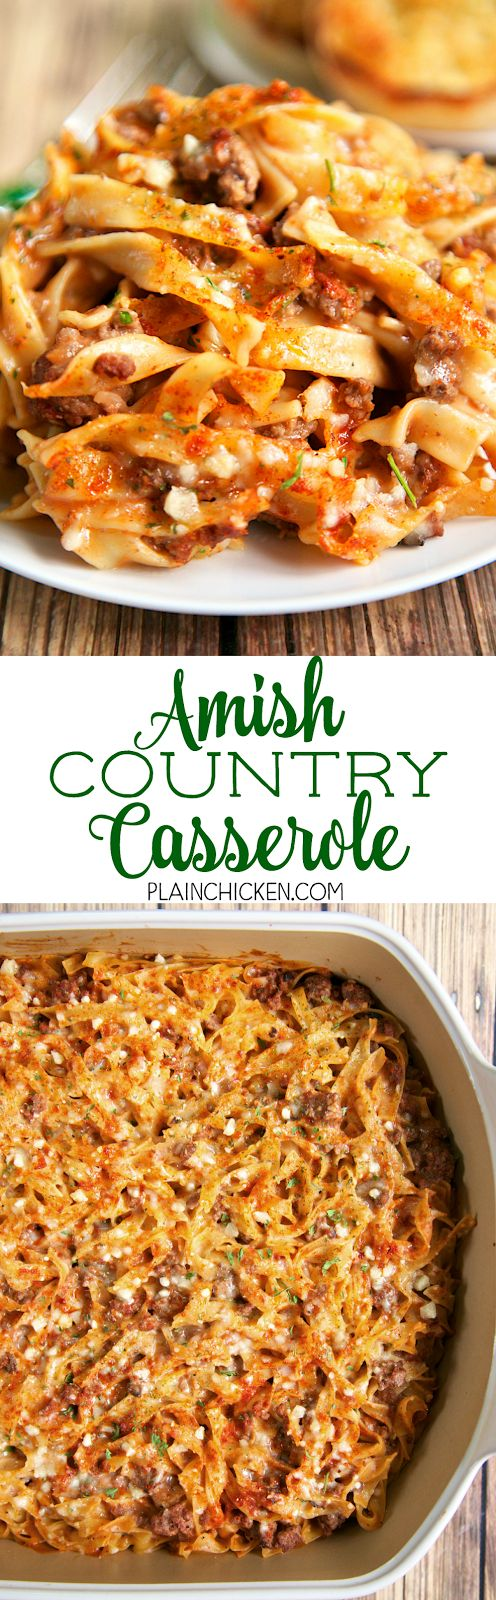 Amish Country Casserole - comfort food at its best!! SO simple and tastes amazing! Everyone cleaned their plate!!! Makes a great freezer meal for an easy weeknight dinner.